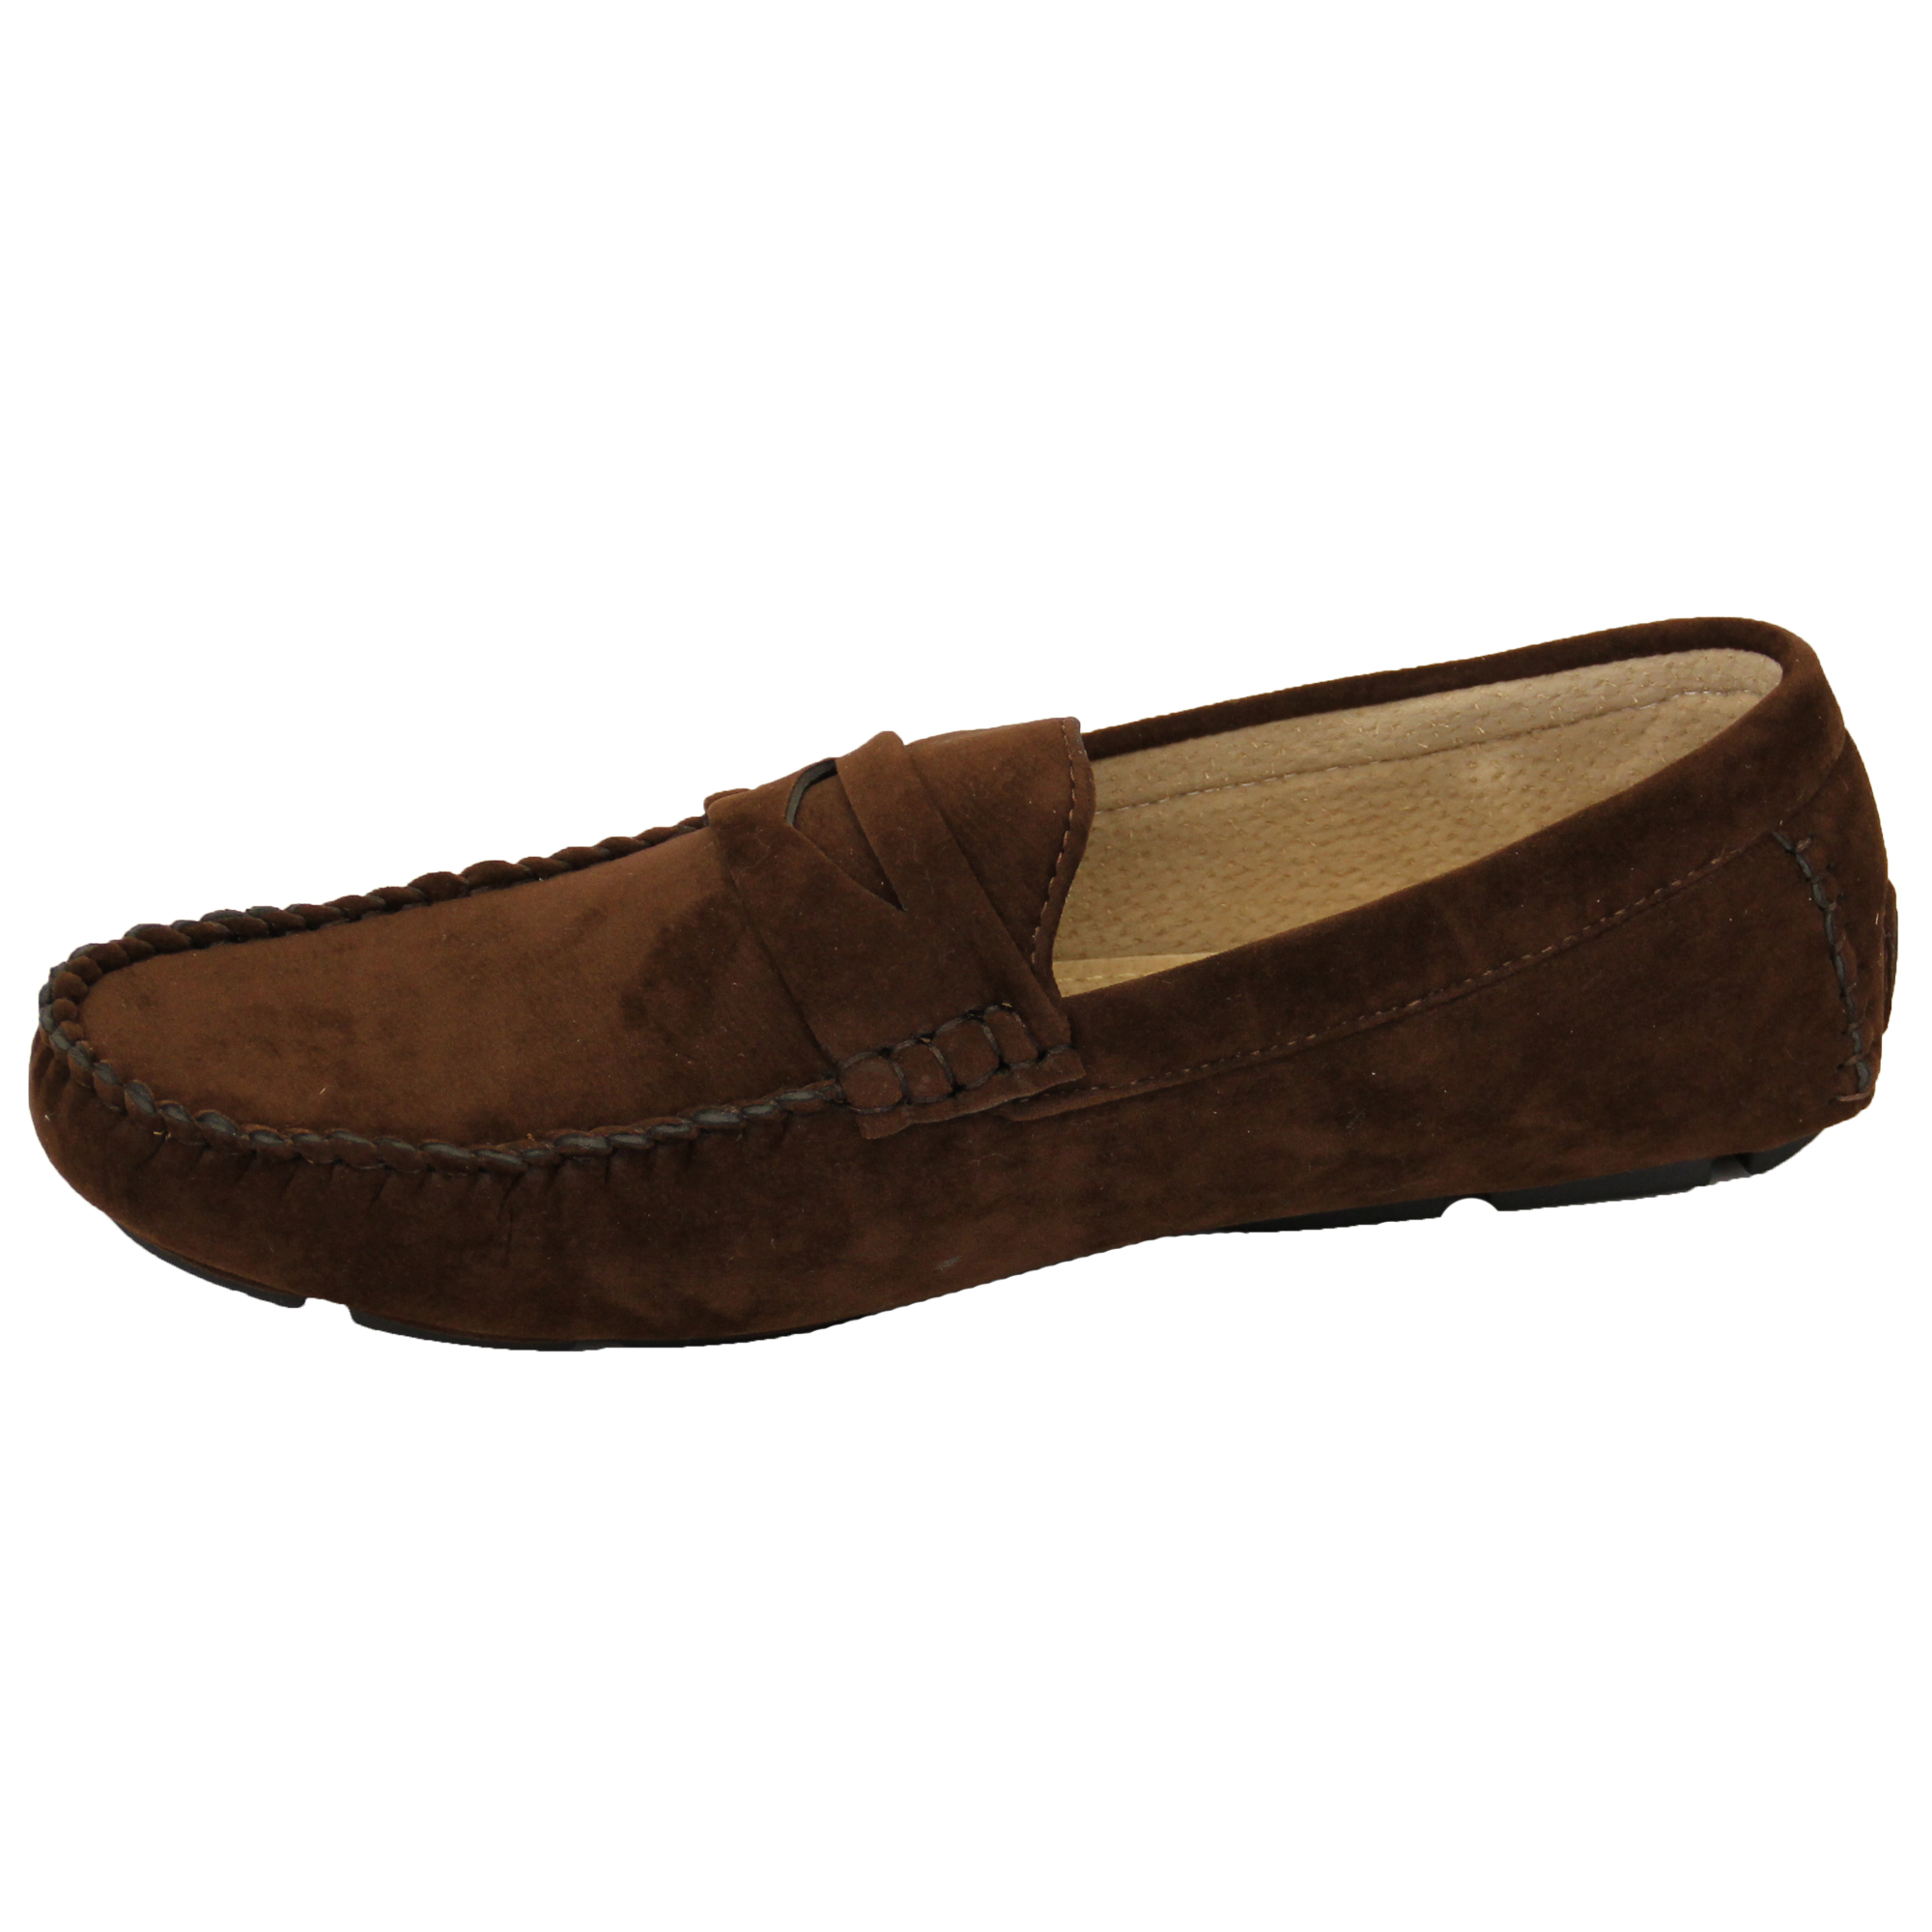 Mens-Moccasins-Suede-Leather-Look-Shoes-Boat-Slip-On-Tassel-Loafers-Smart-Formal thumbnail 7